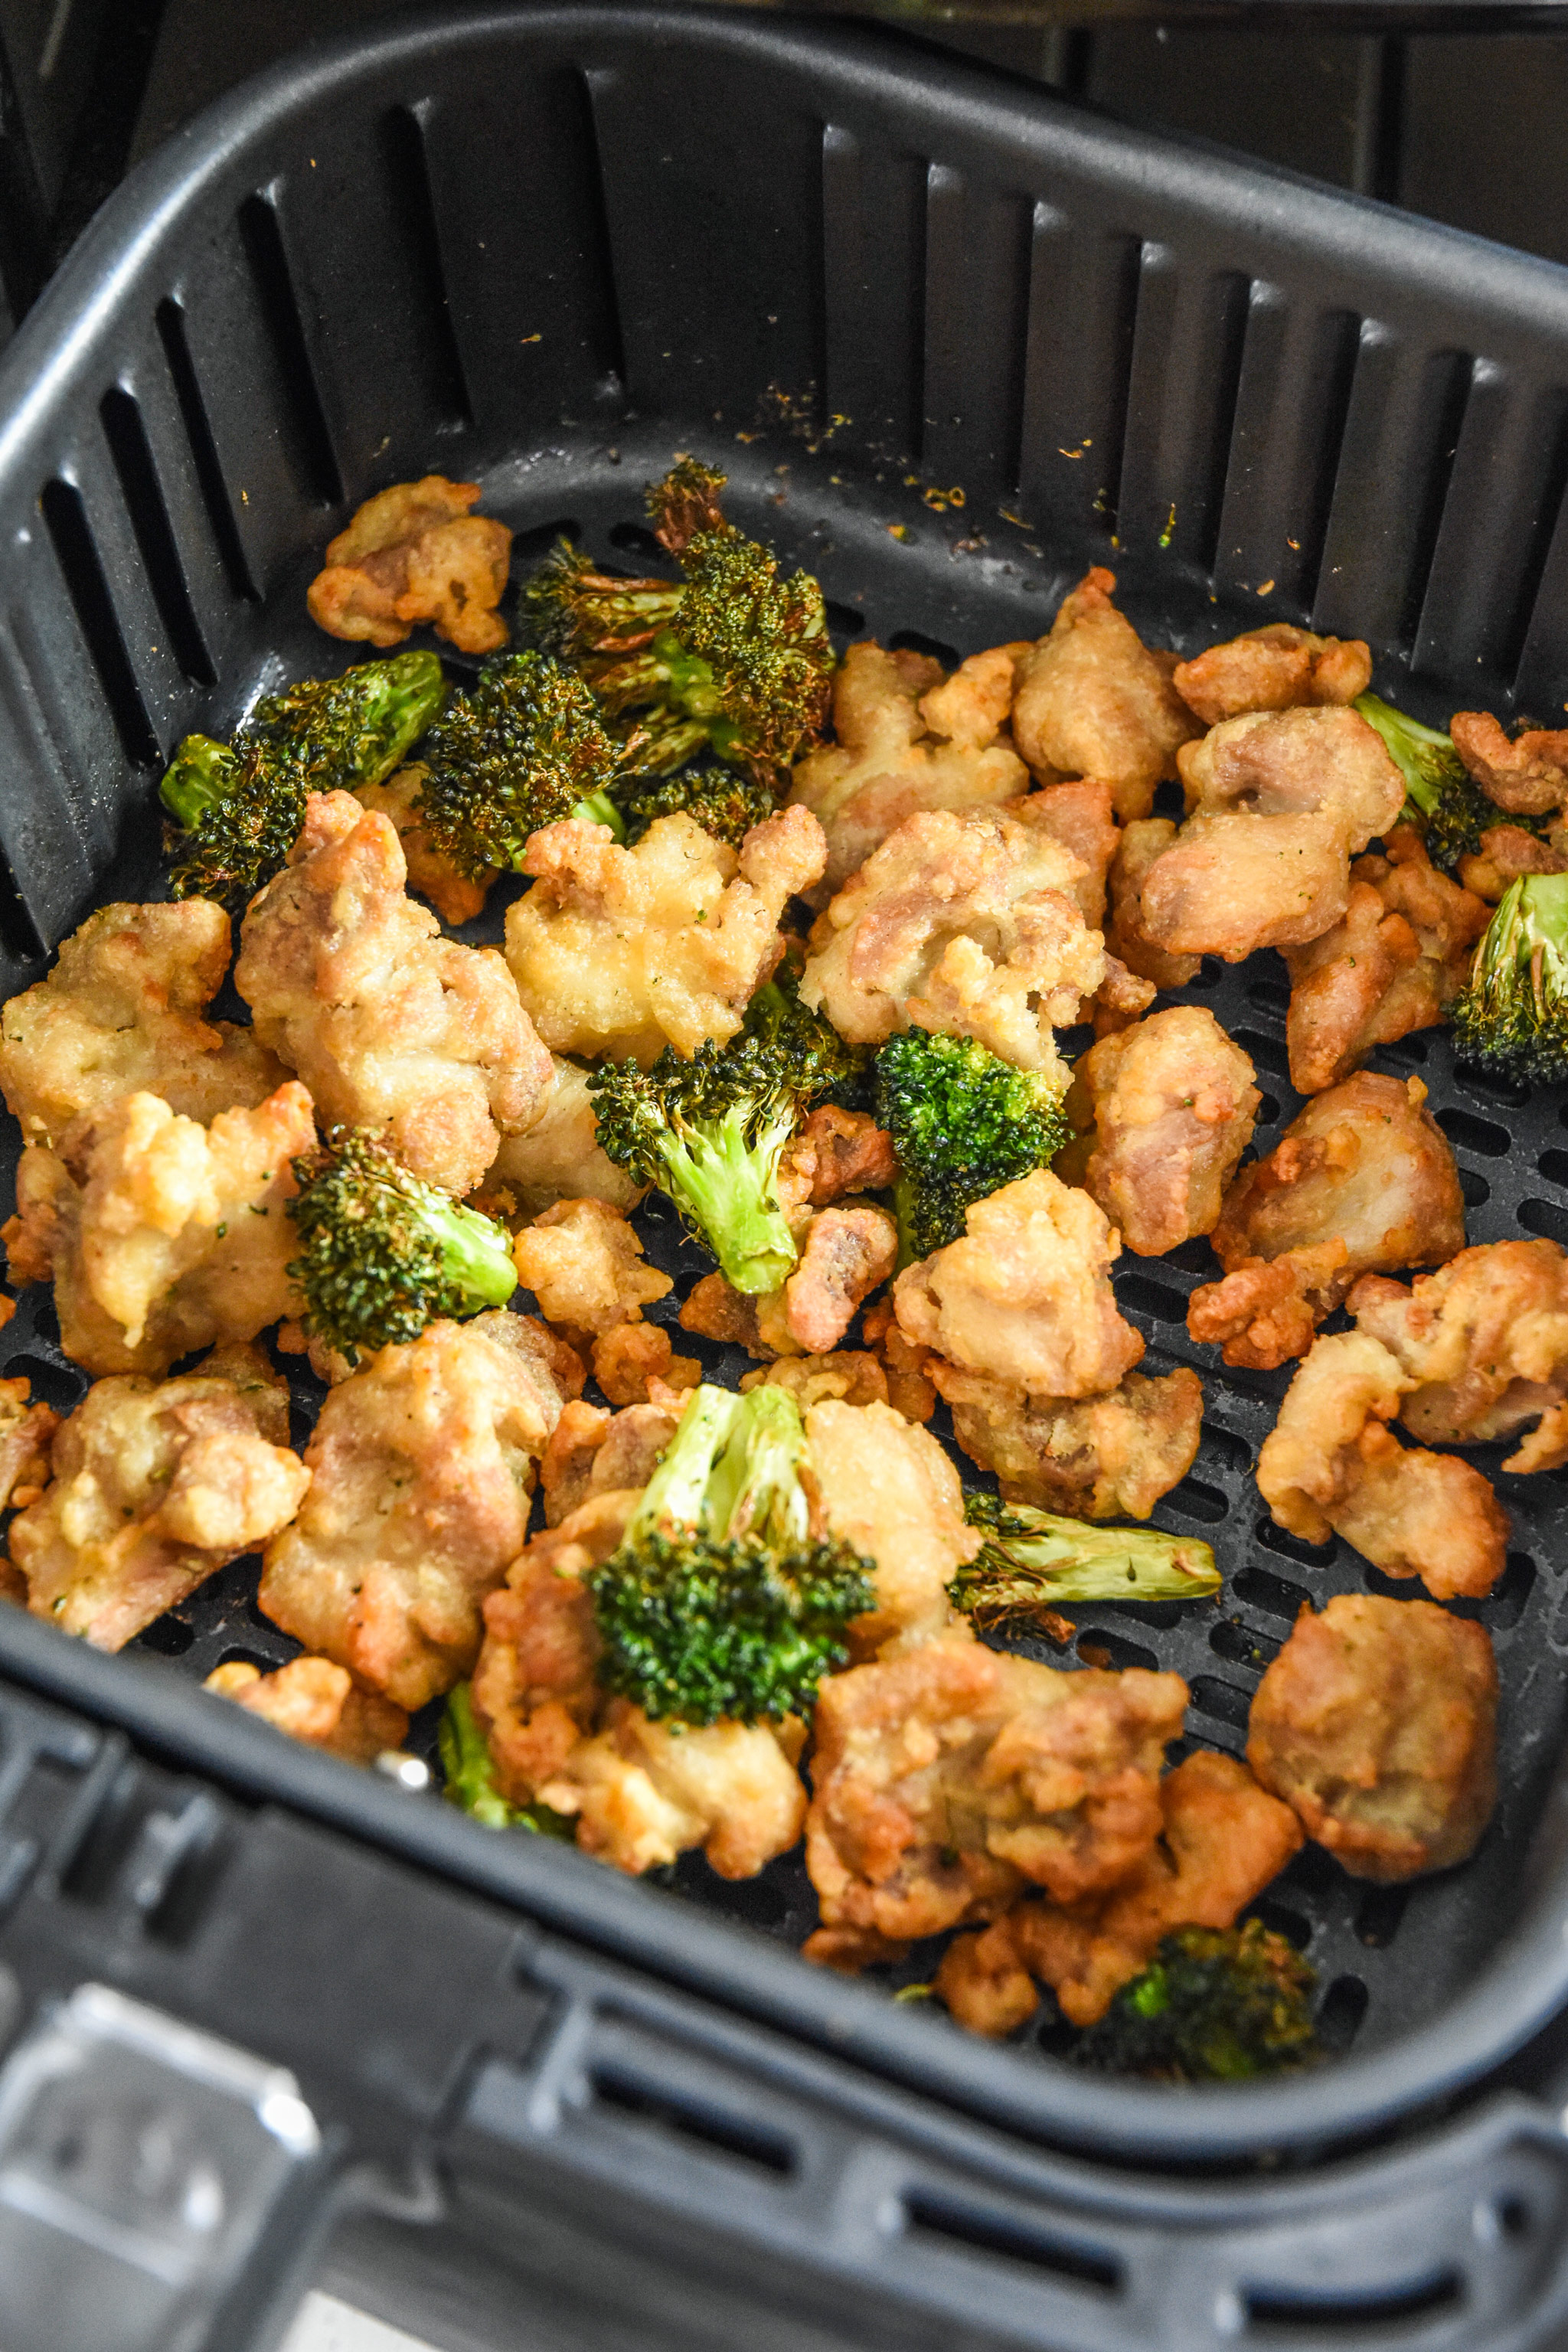 trader joes orange chicken and broccoli cooked in the air fryer